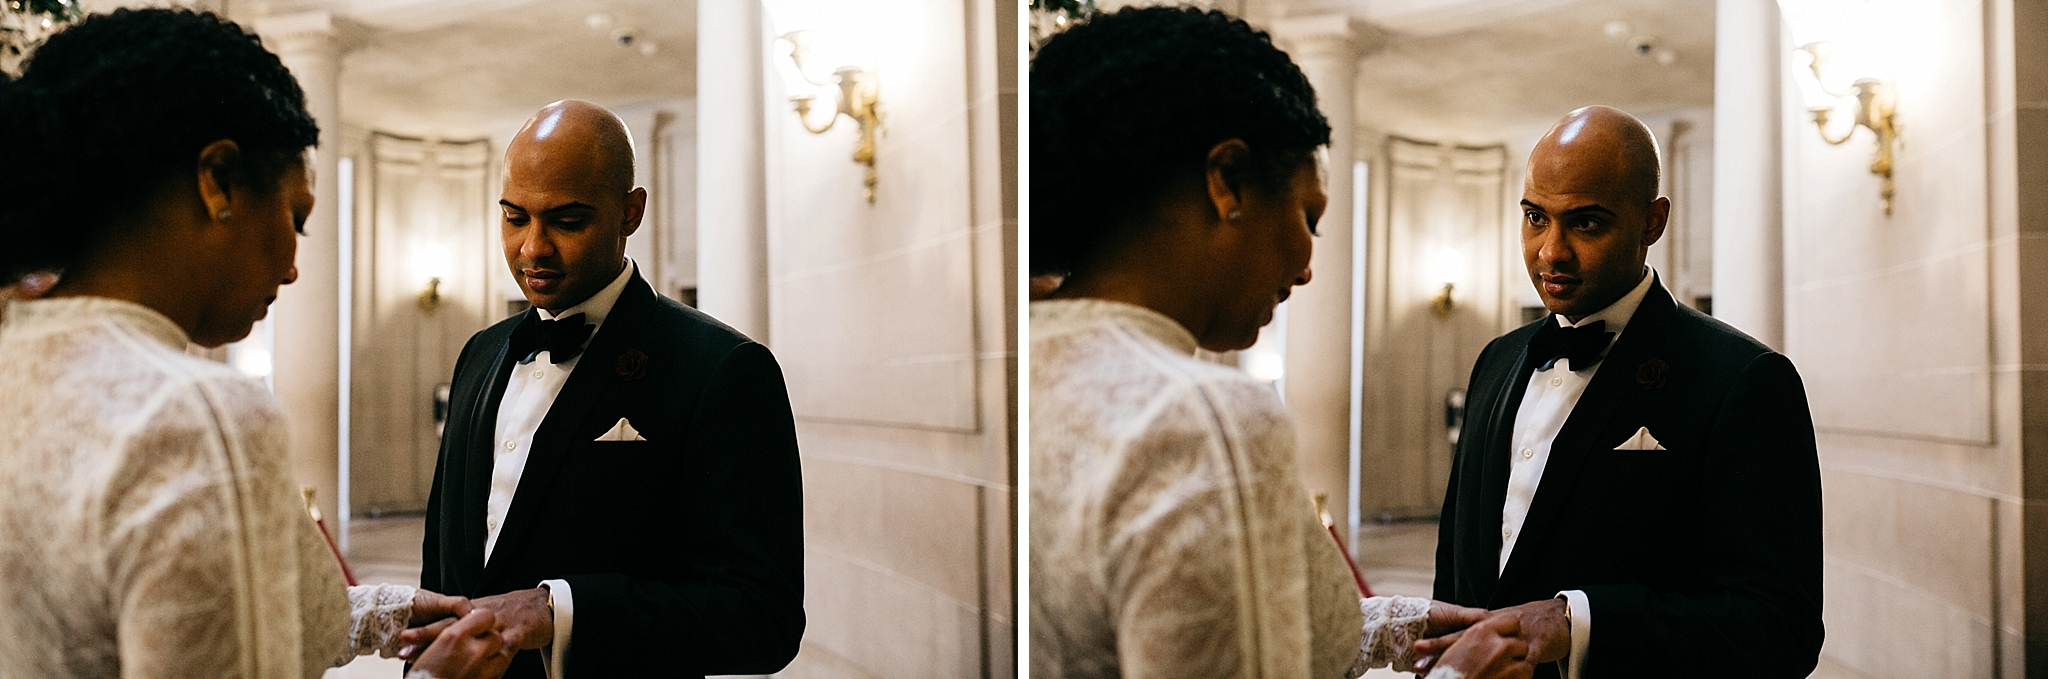 sf city hall elopement // San Francisco city hall wedding photographer // sf city hall elopement photographer